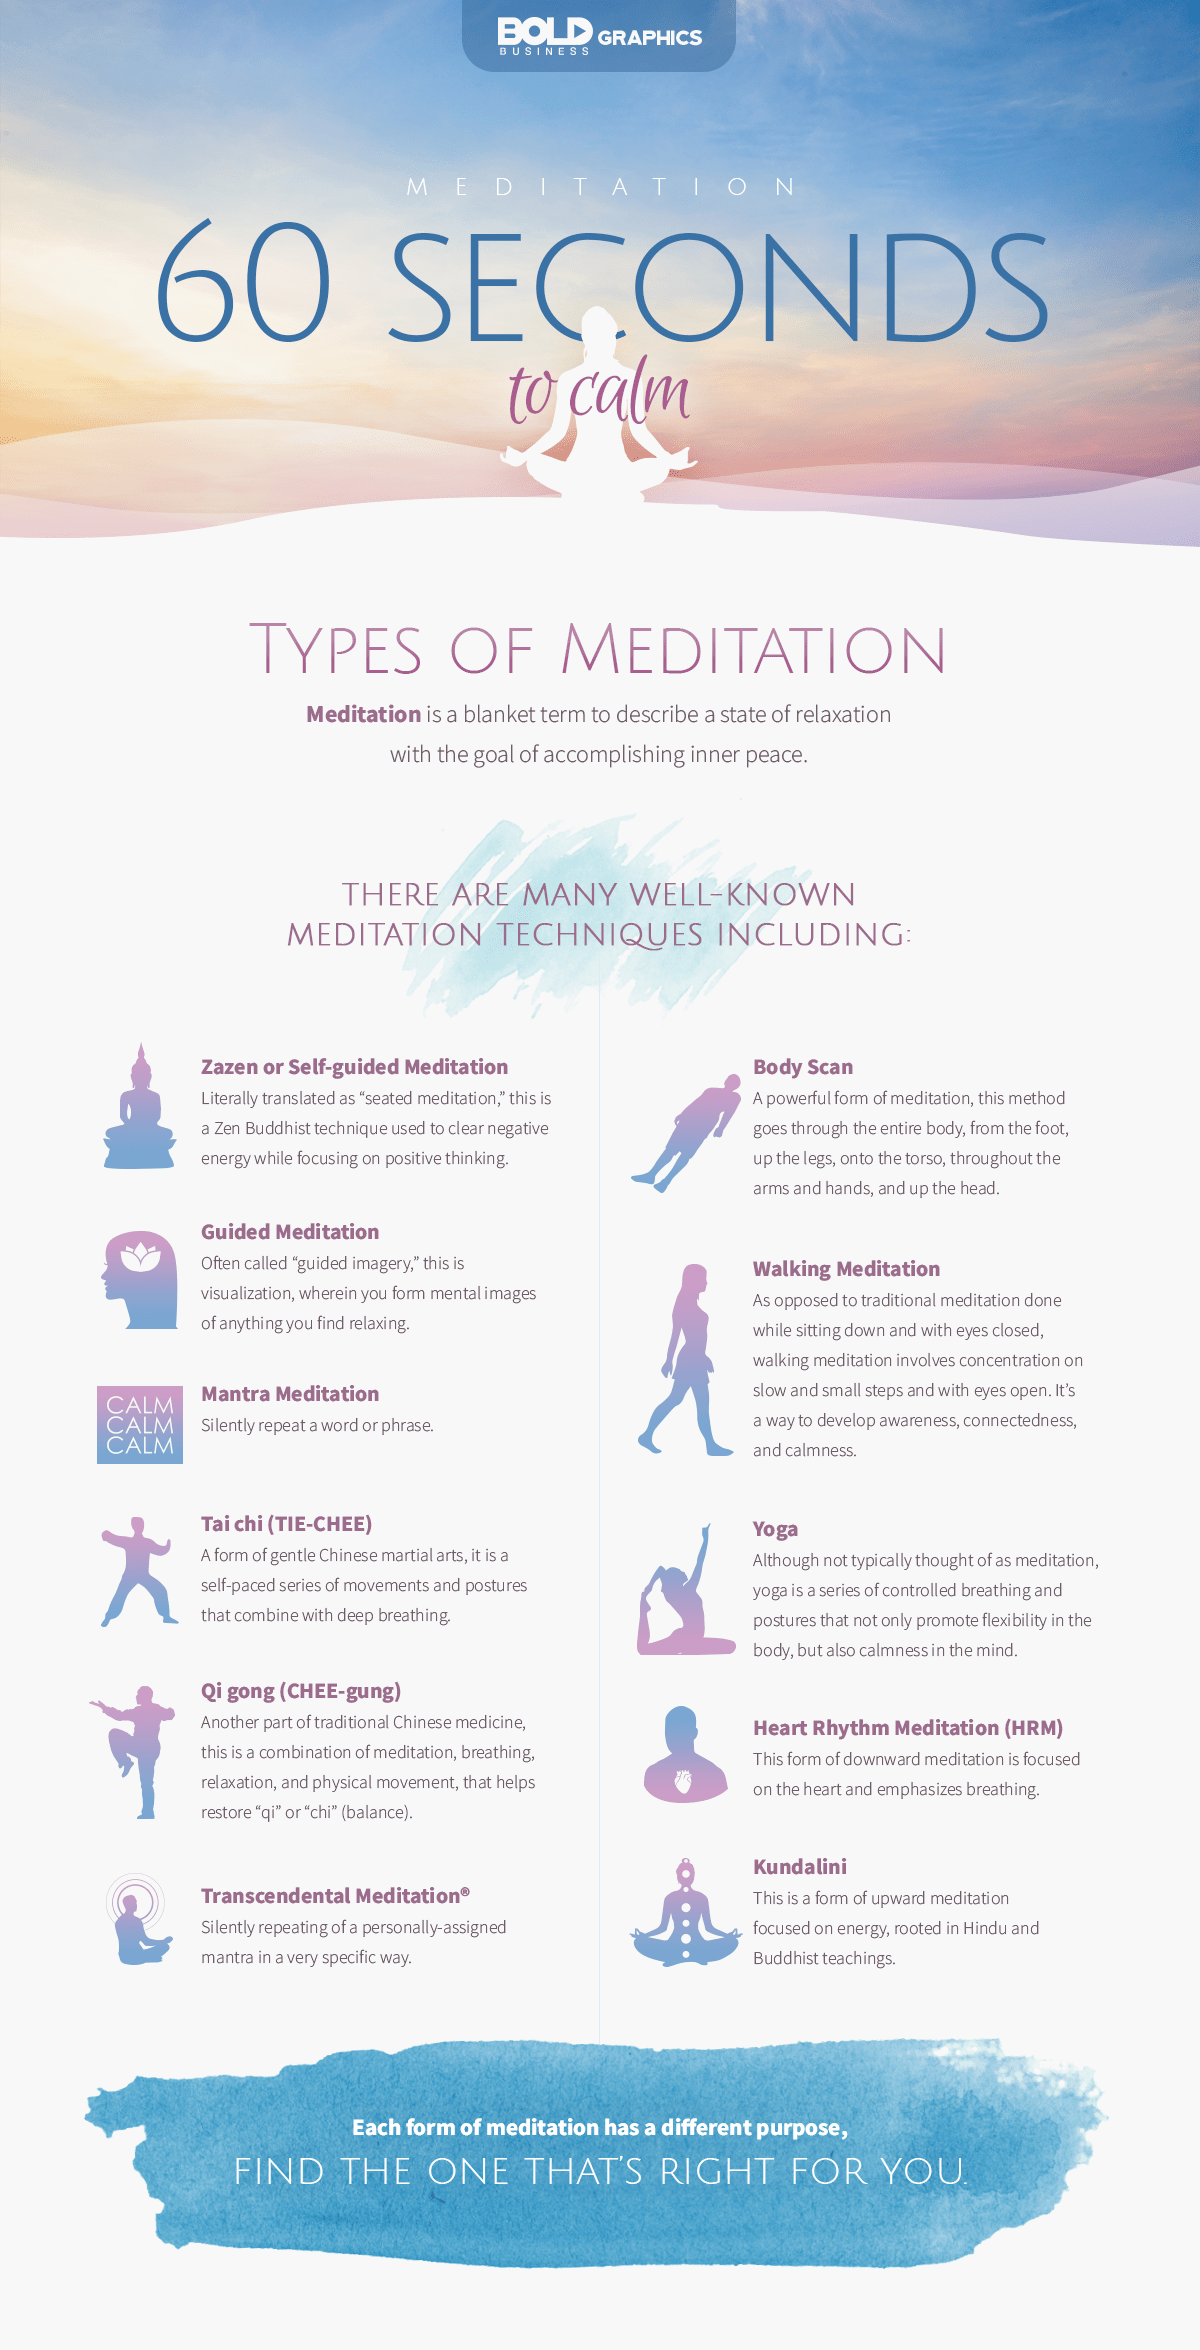 meditation,types of meditation infographic,zazen meditation,guided meditation,mantra meditation,tai chi meditation,qi gong meditation,transcendental meditation,body scan meditation,walking meditation,yoga,heart rhythm meditation,kundalini meditation